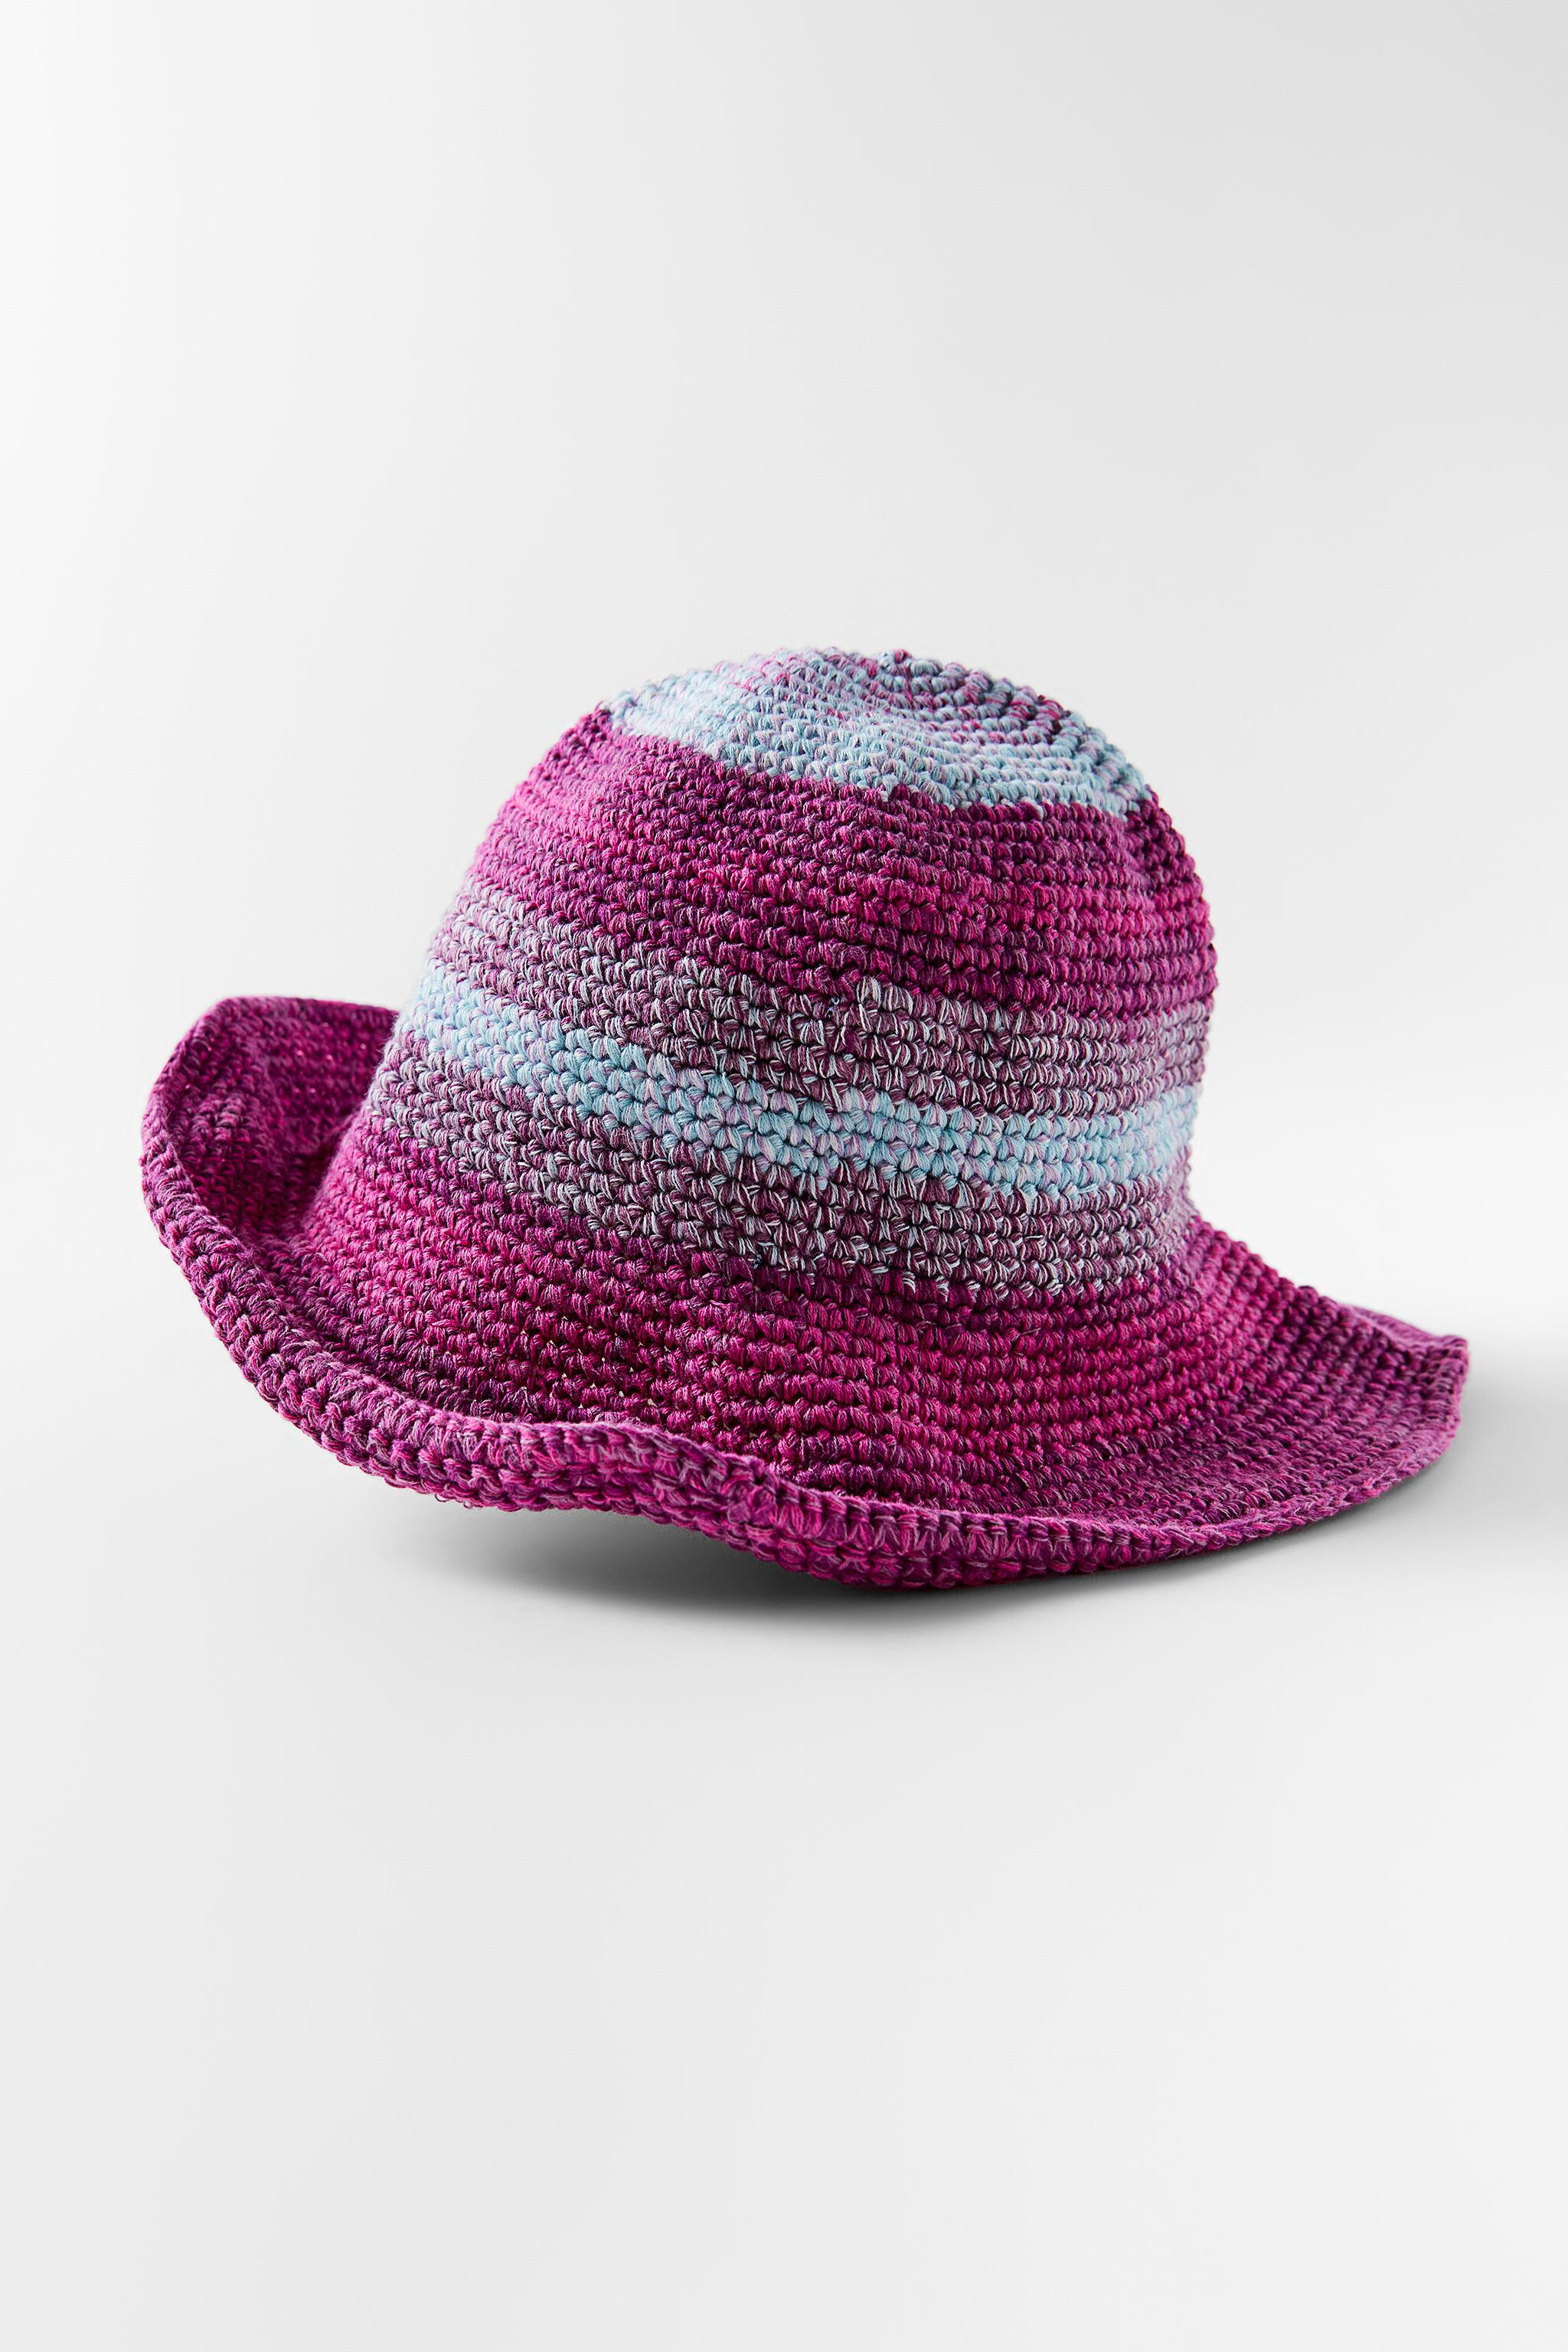 MULTICOLORED CROCHETED HAT 1